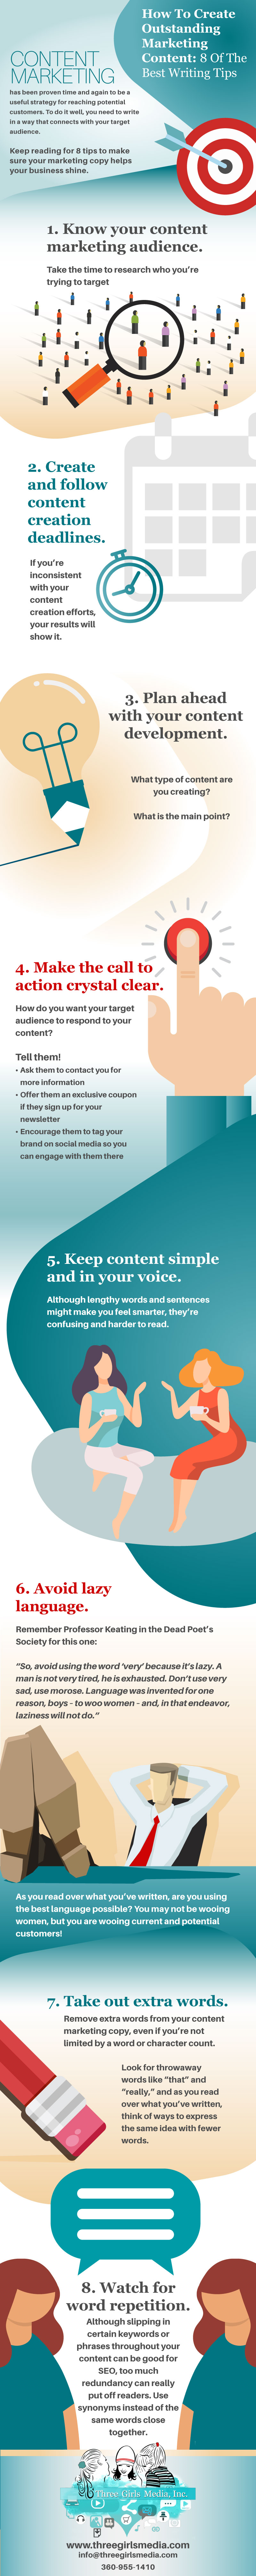 Infographic with 8 content marketing writing tips.